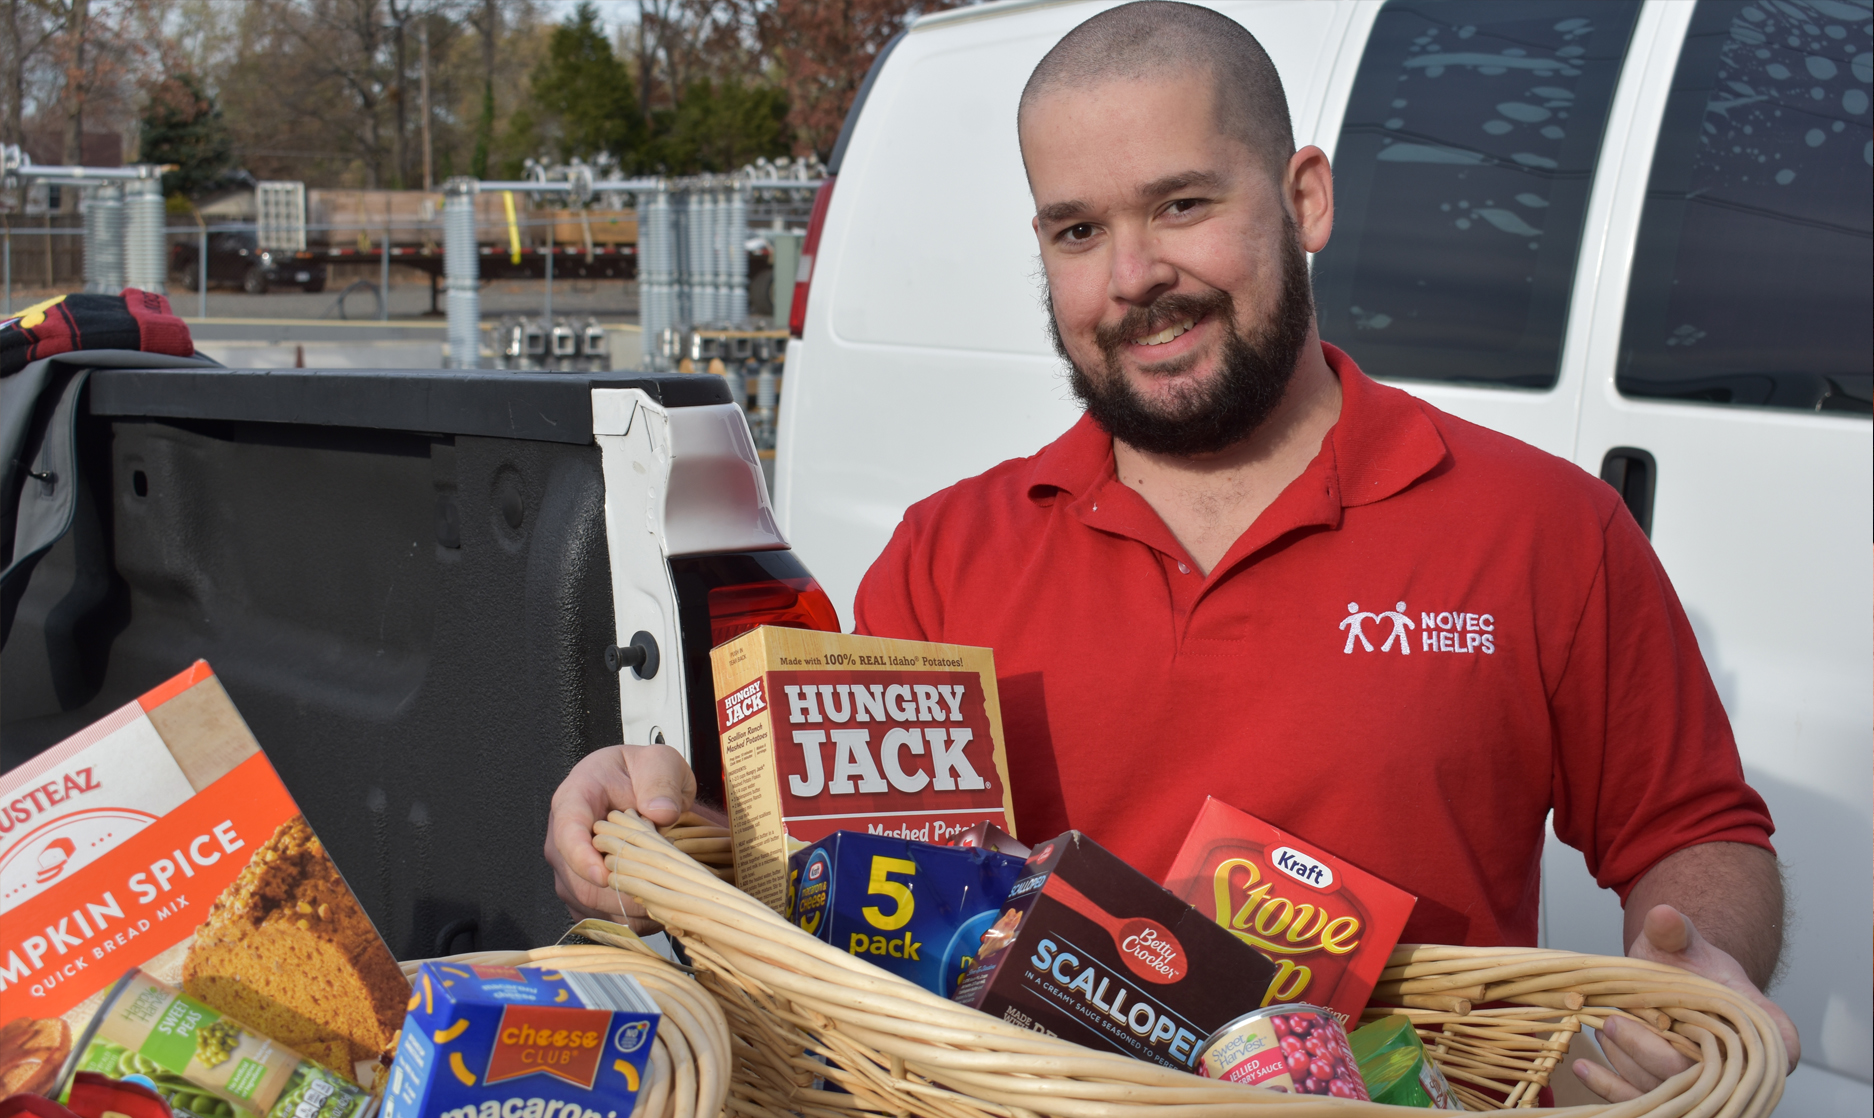 NOVEC HELPS Donating Food